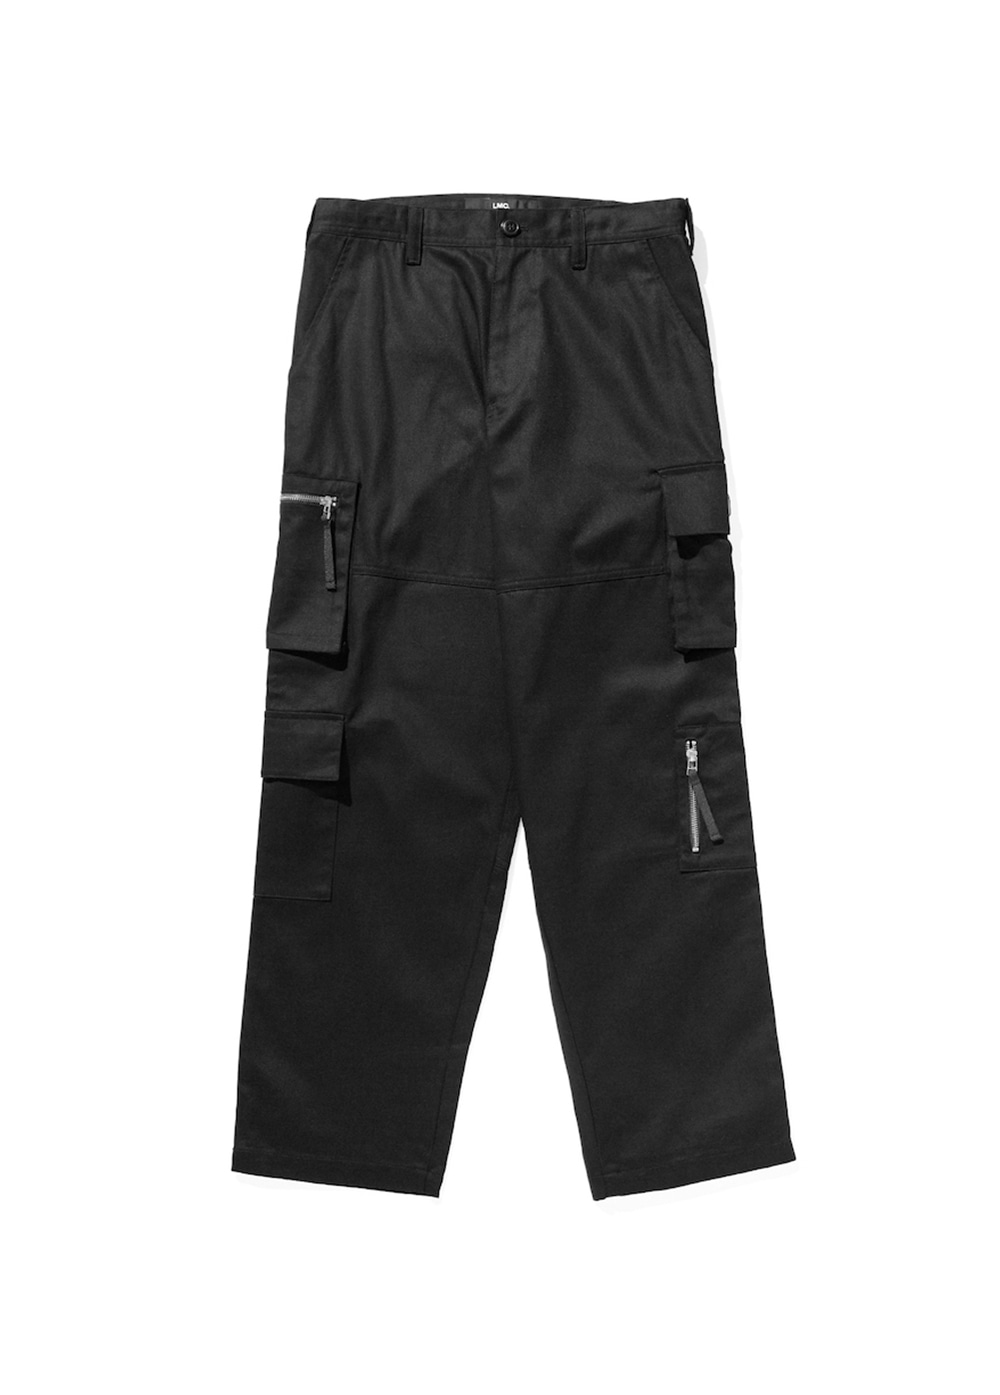 LMC ZIPPER CARGO PANTS black